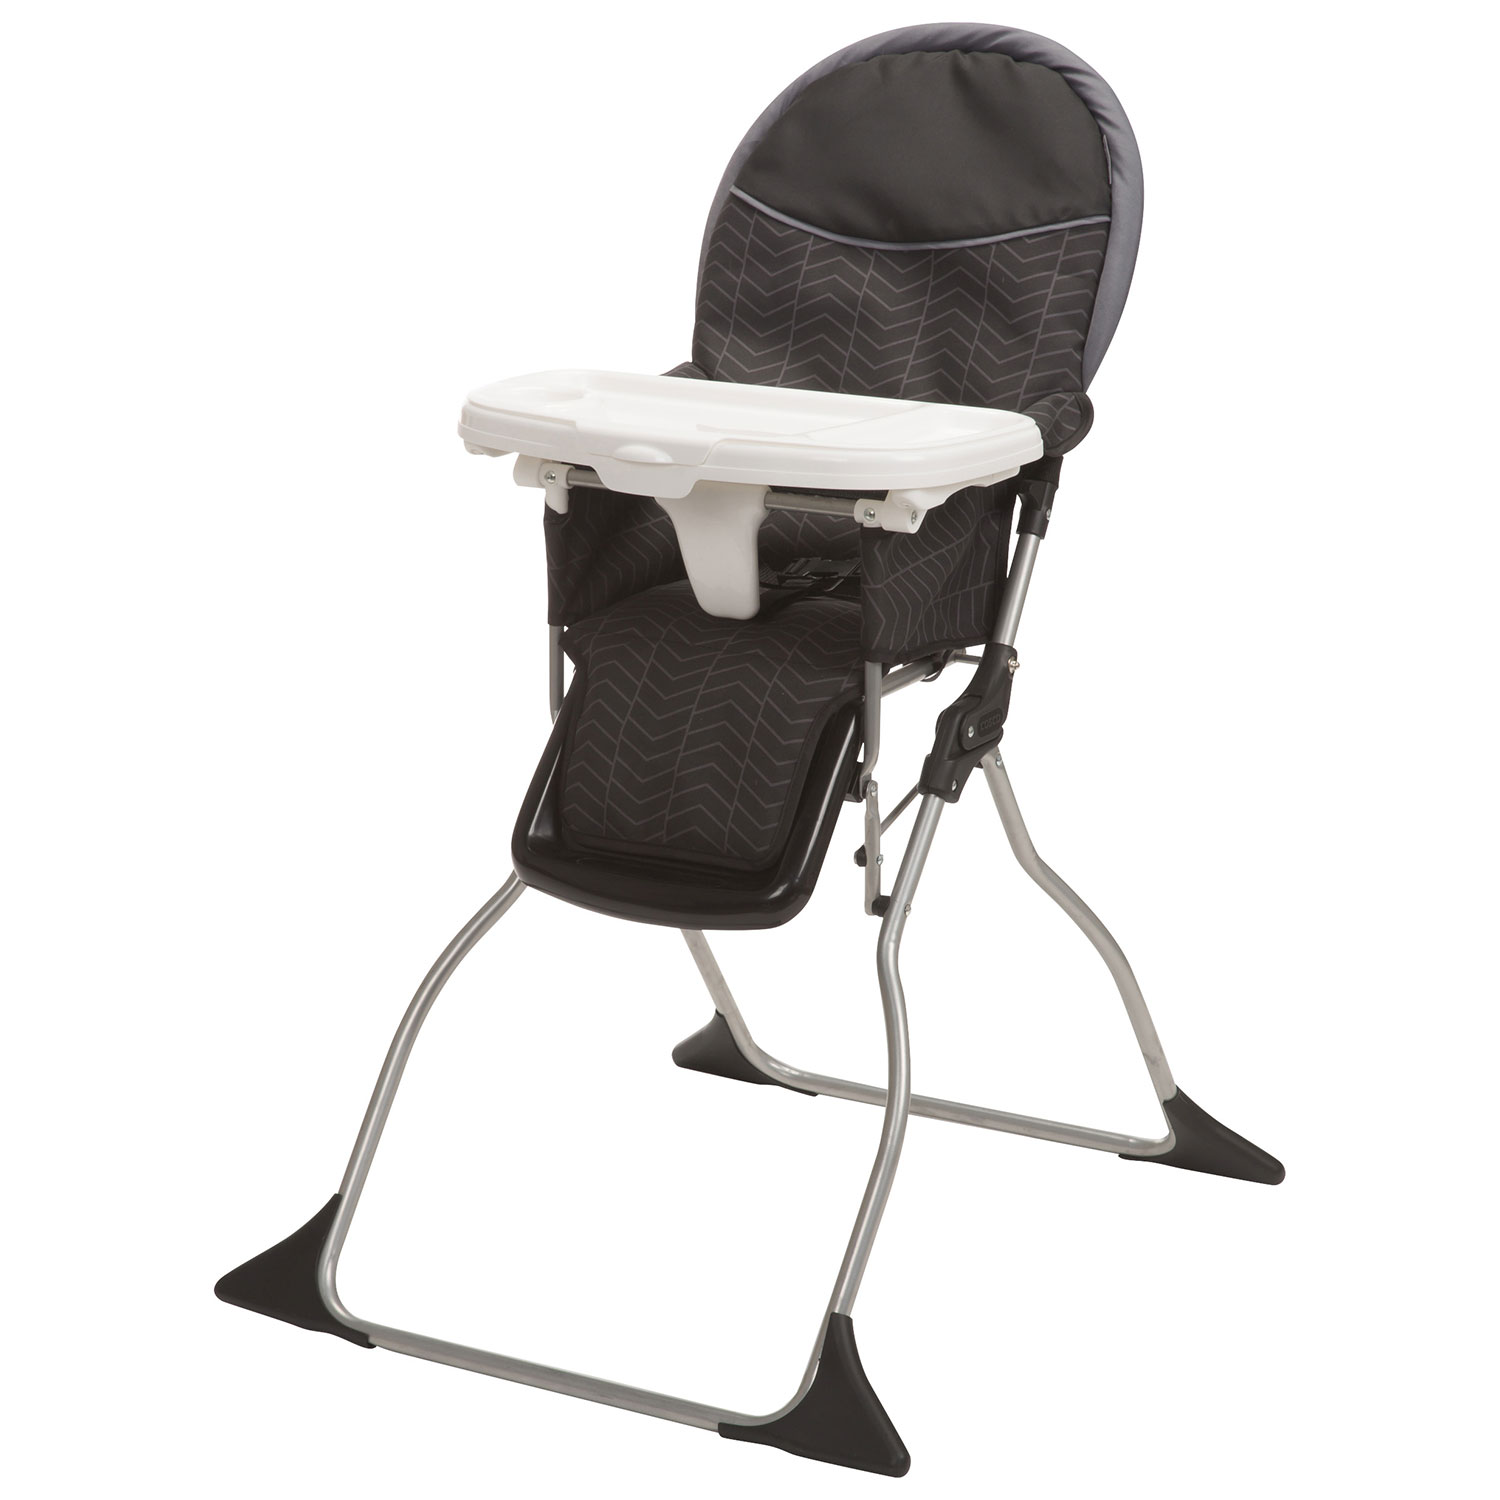 High Chairs & Booster Seats Nursing & Feeding Best Buy Canada